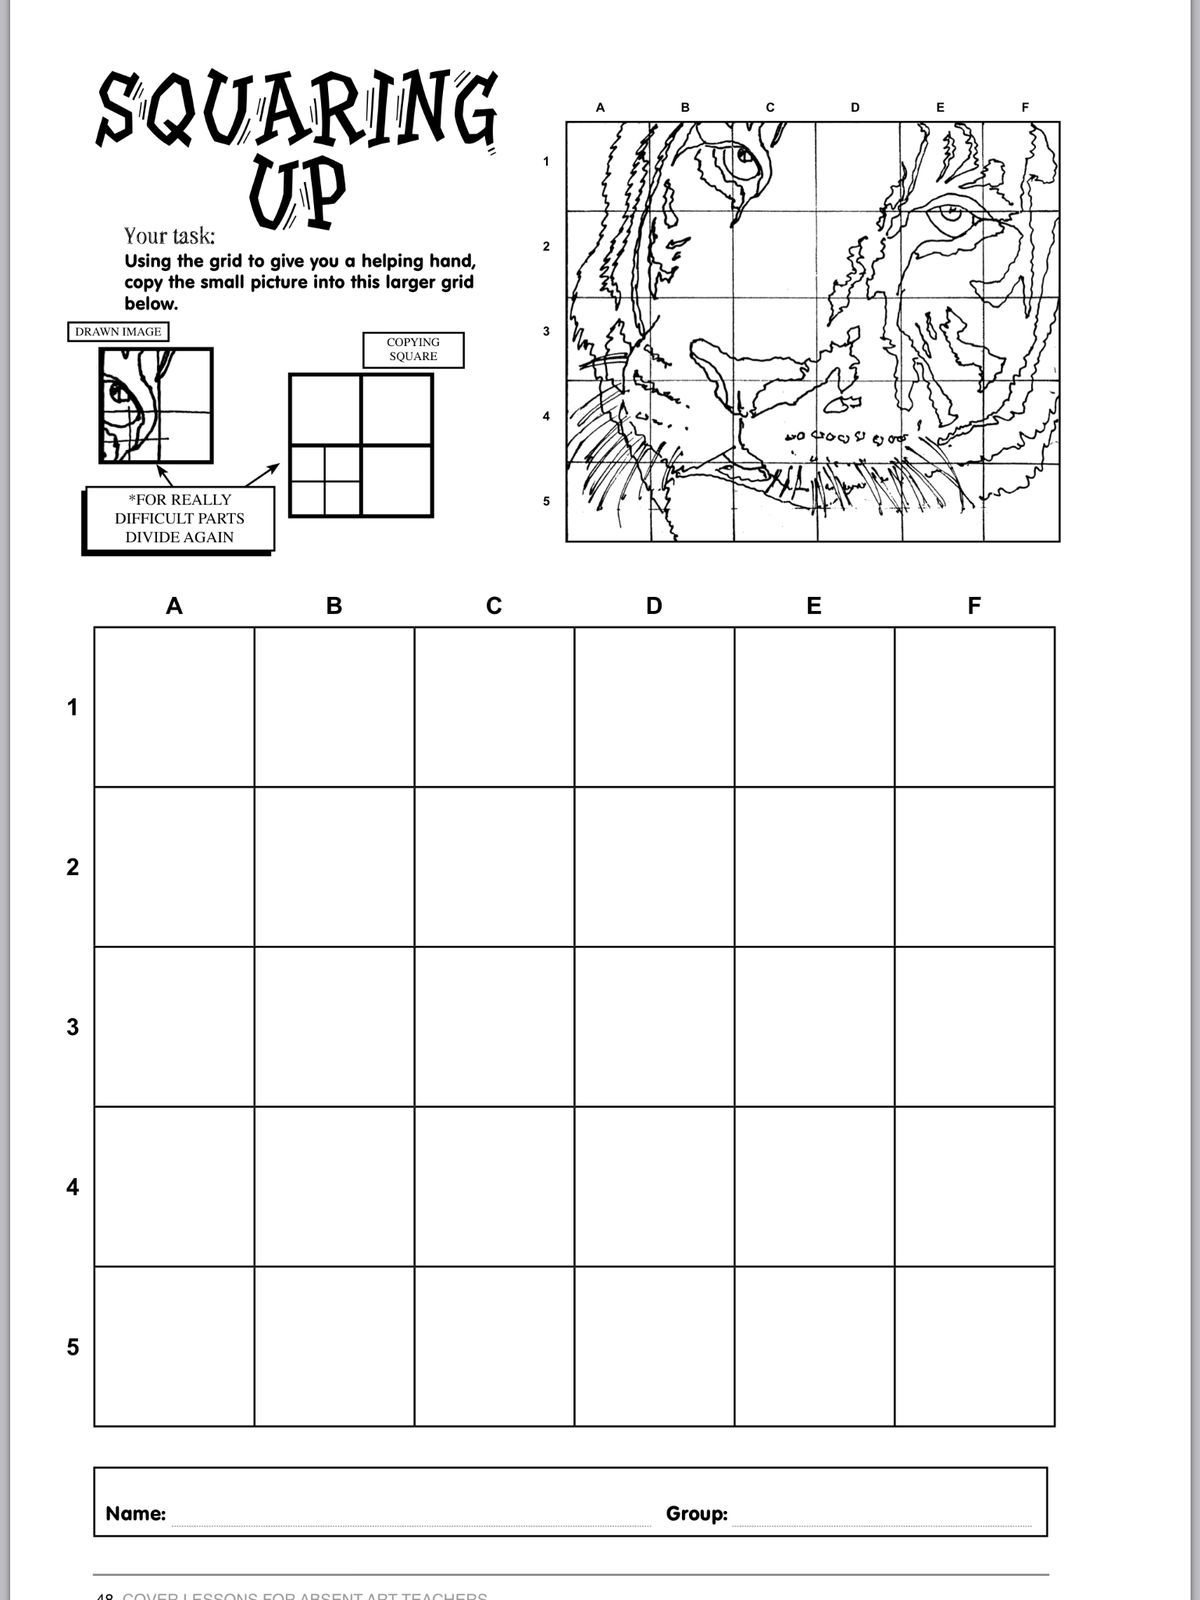 Worksheets Grid Art Worksheets 1e92577f2bf2ab0ad36b1847bf02a3e0 jpg pixels art squaring up making a grid this is an excellent tool to practice lines and learning how shade sometimes in class